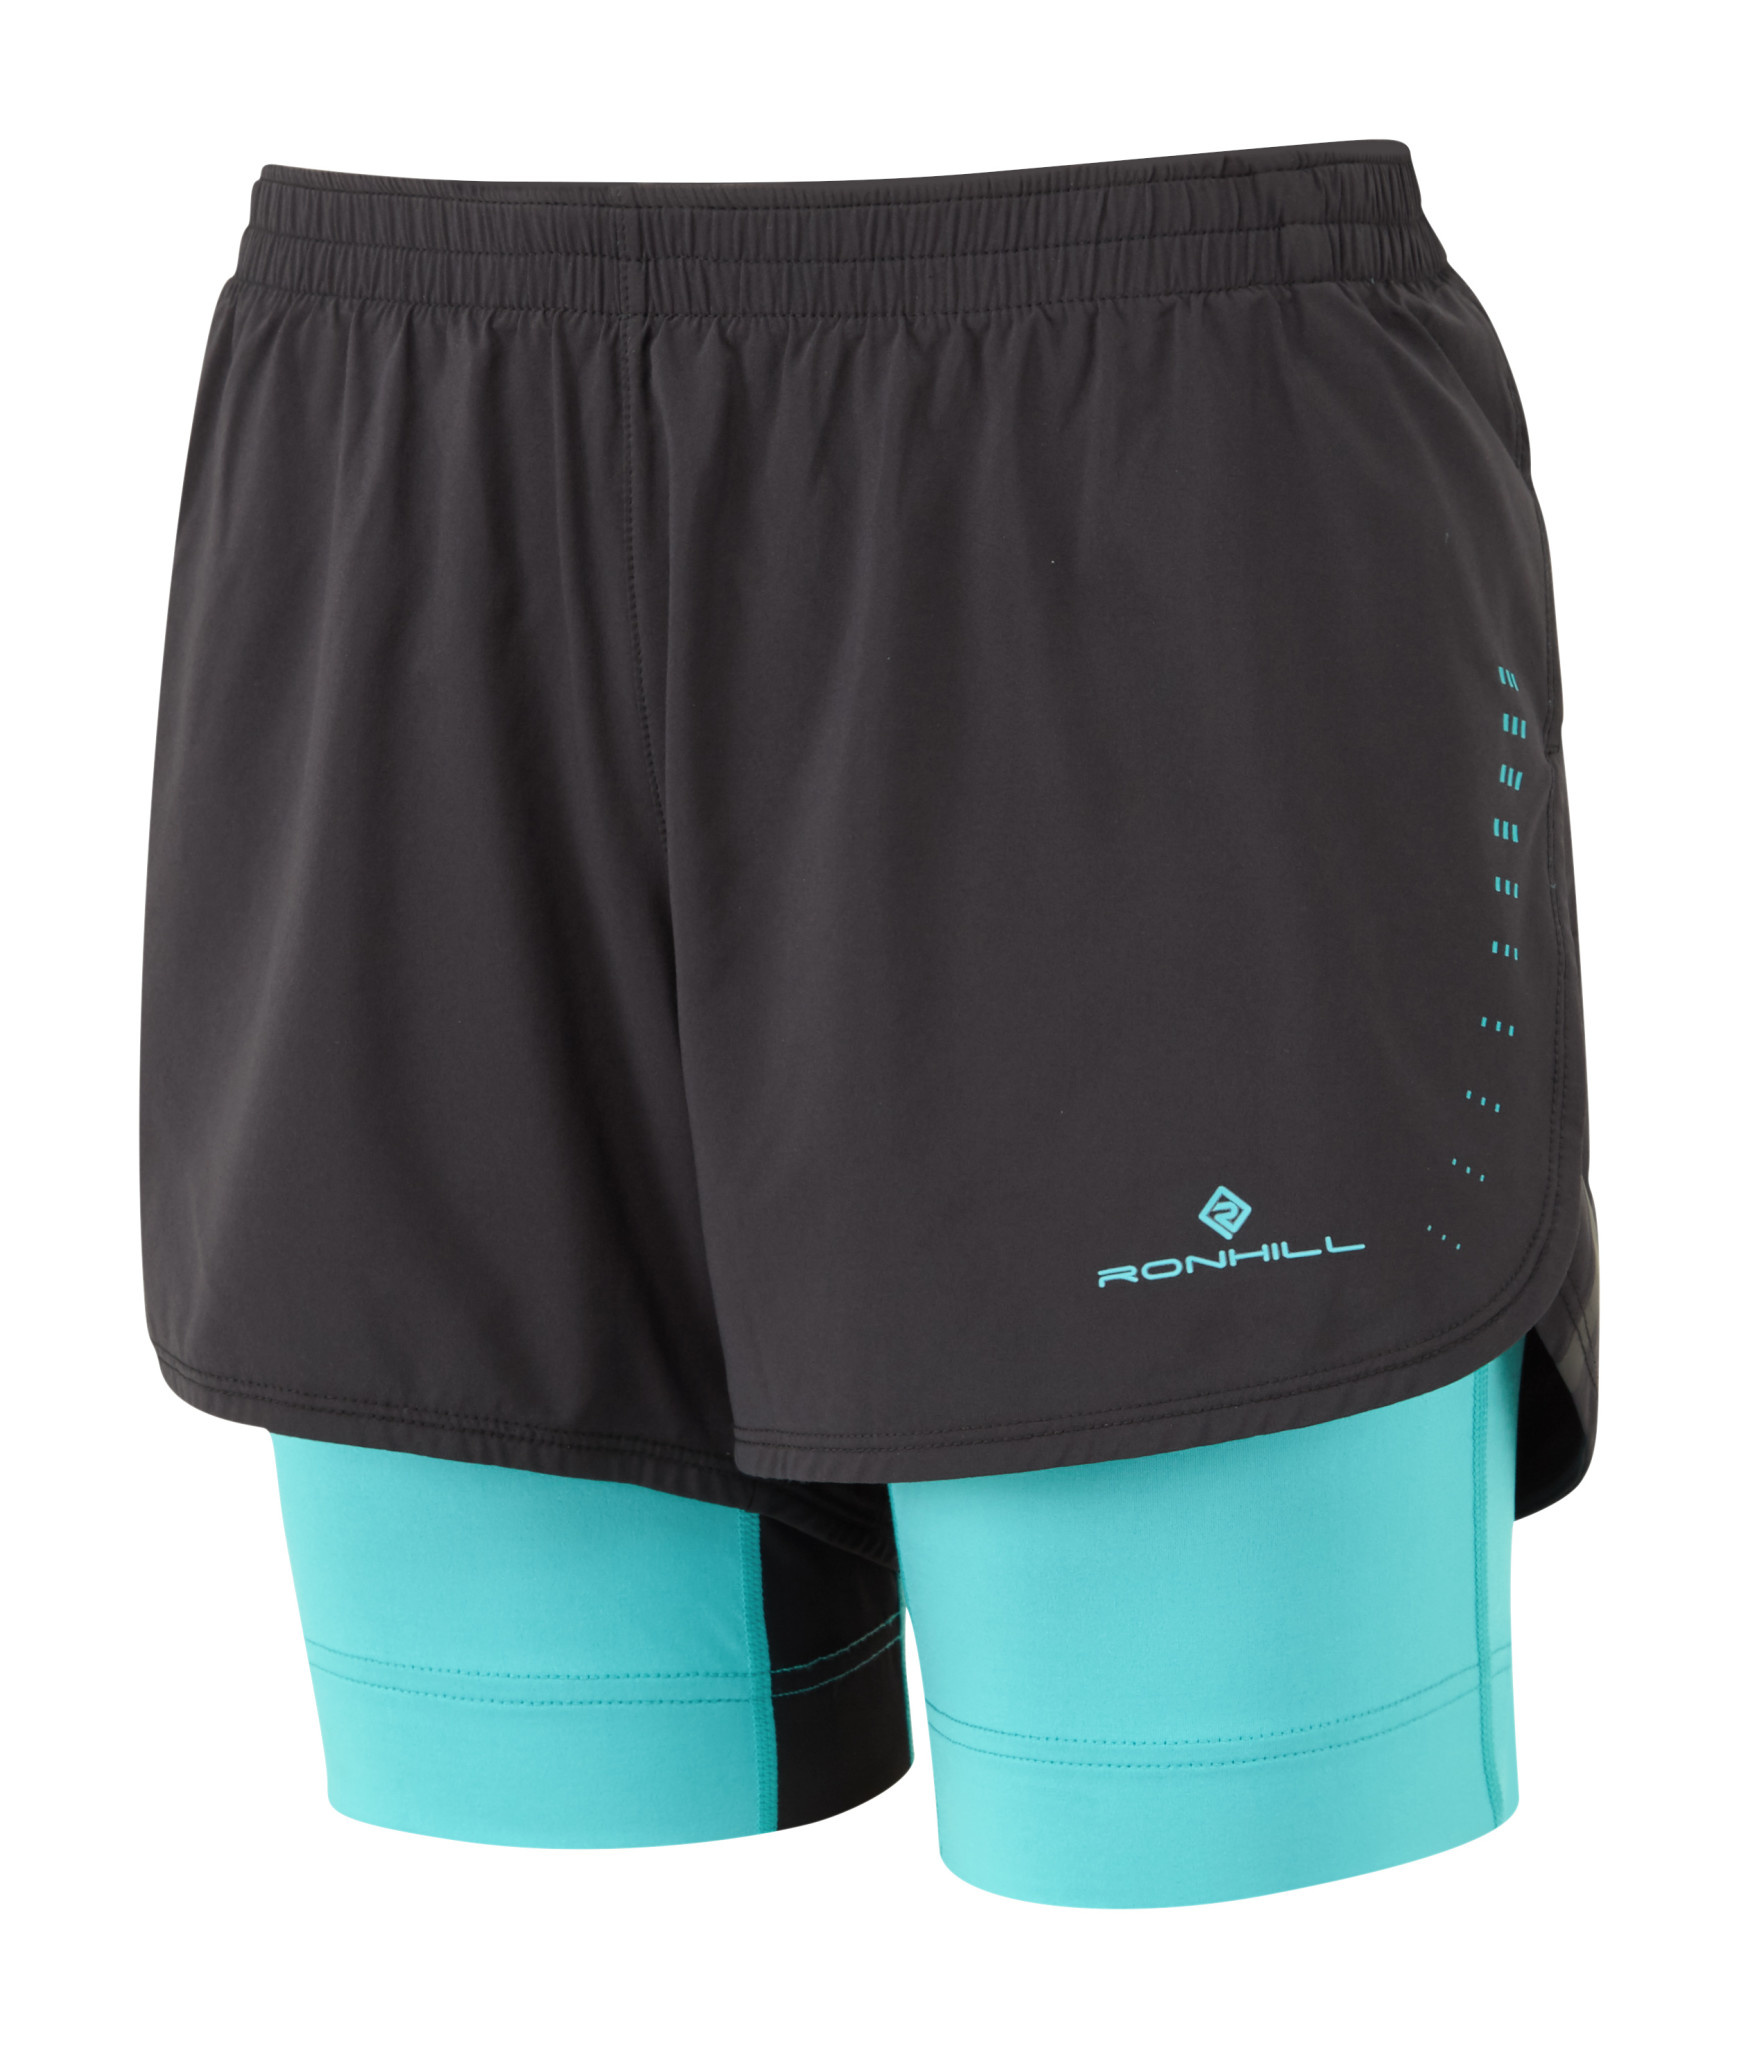 Black Ronhill Infinity Marathon Twin Mens 2 In 1 Running Shorts